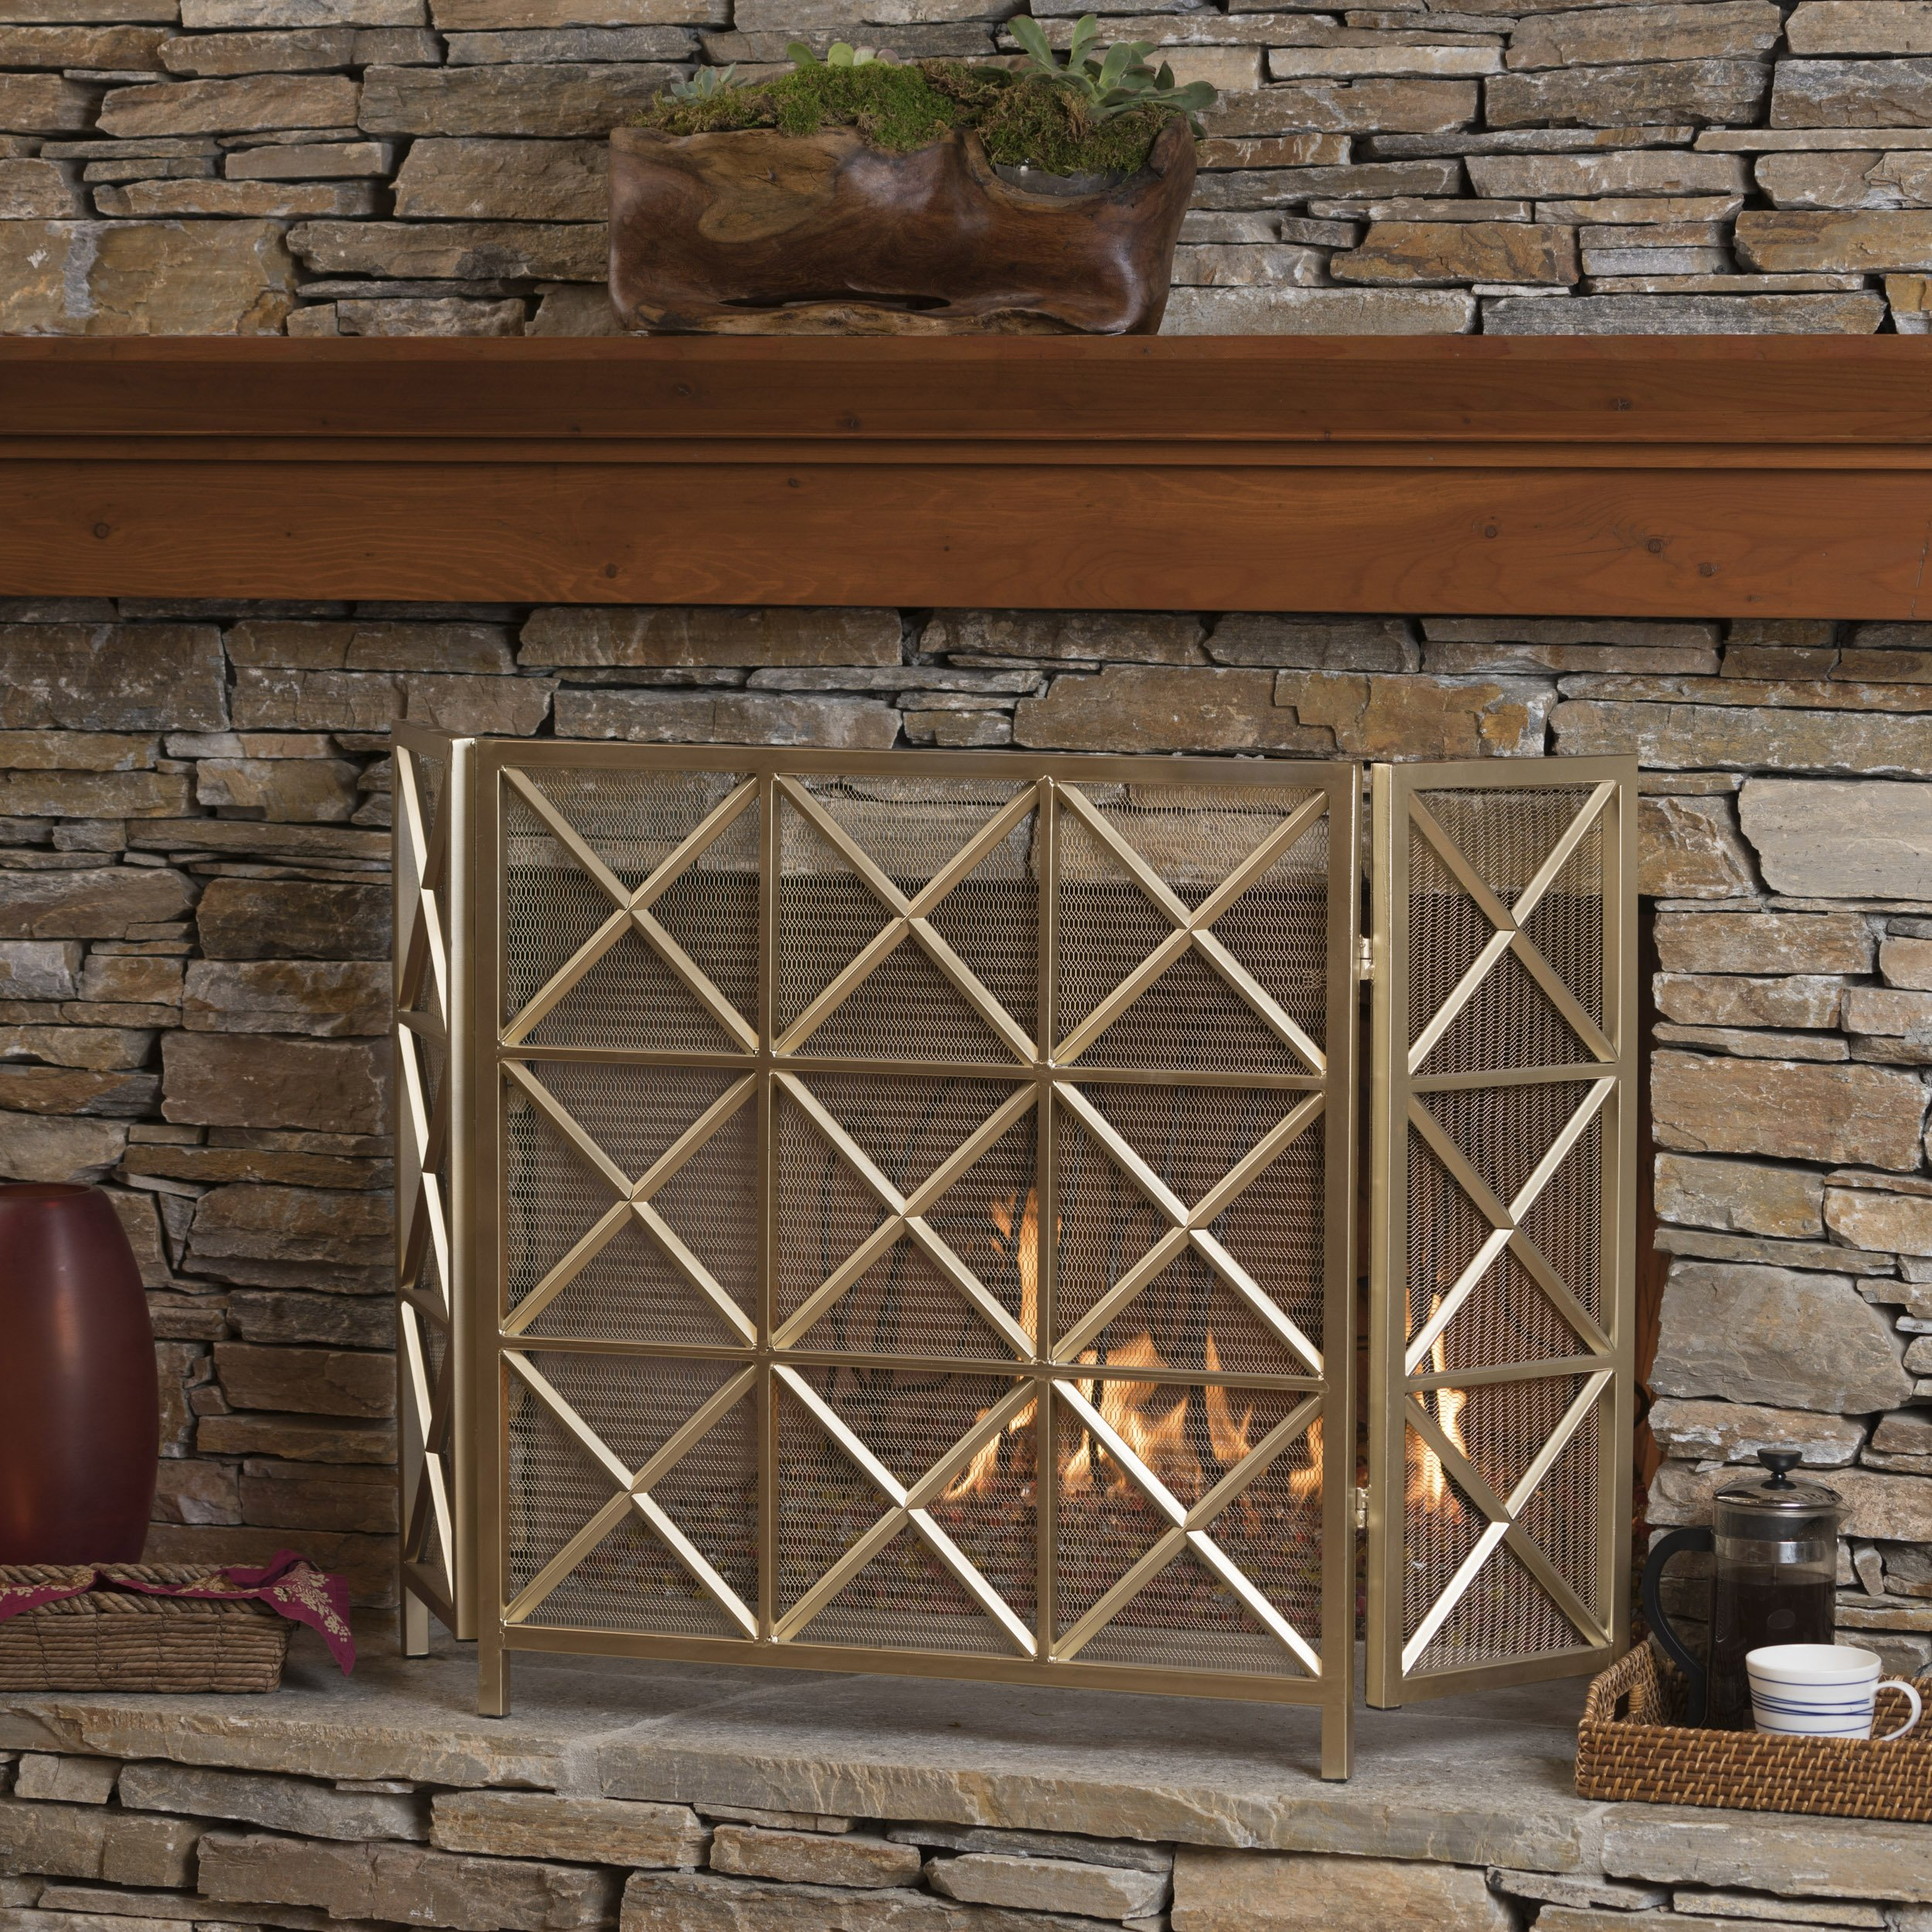 Christopher Knight Home Mandralla 3 Panelled Gold Iron Fireplace Screen by Christopher Knight Home